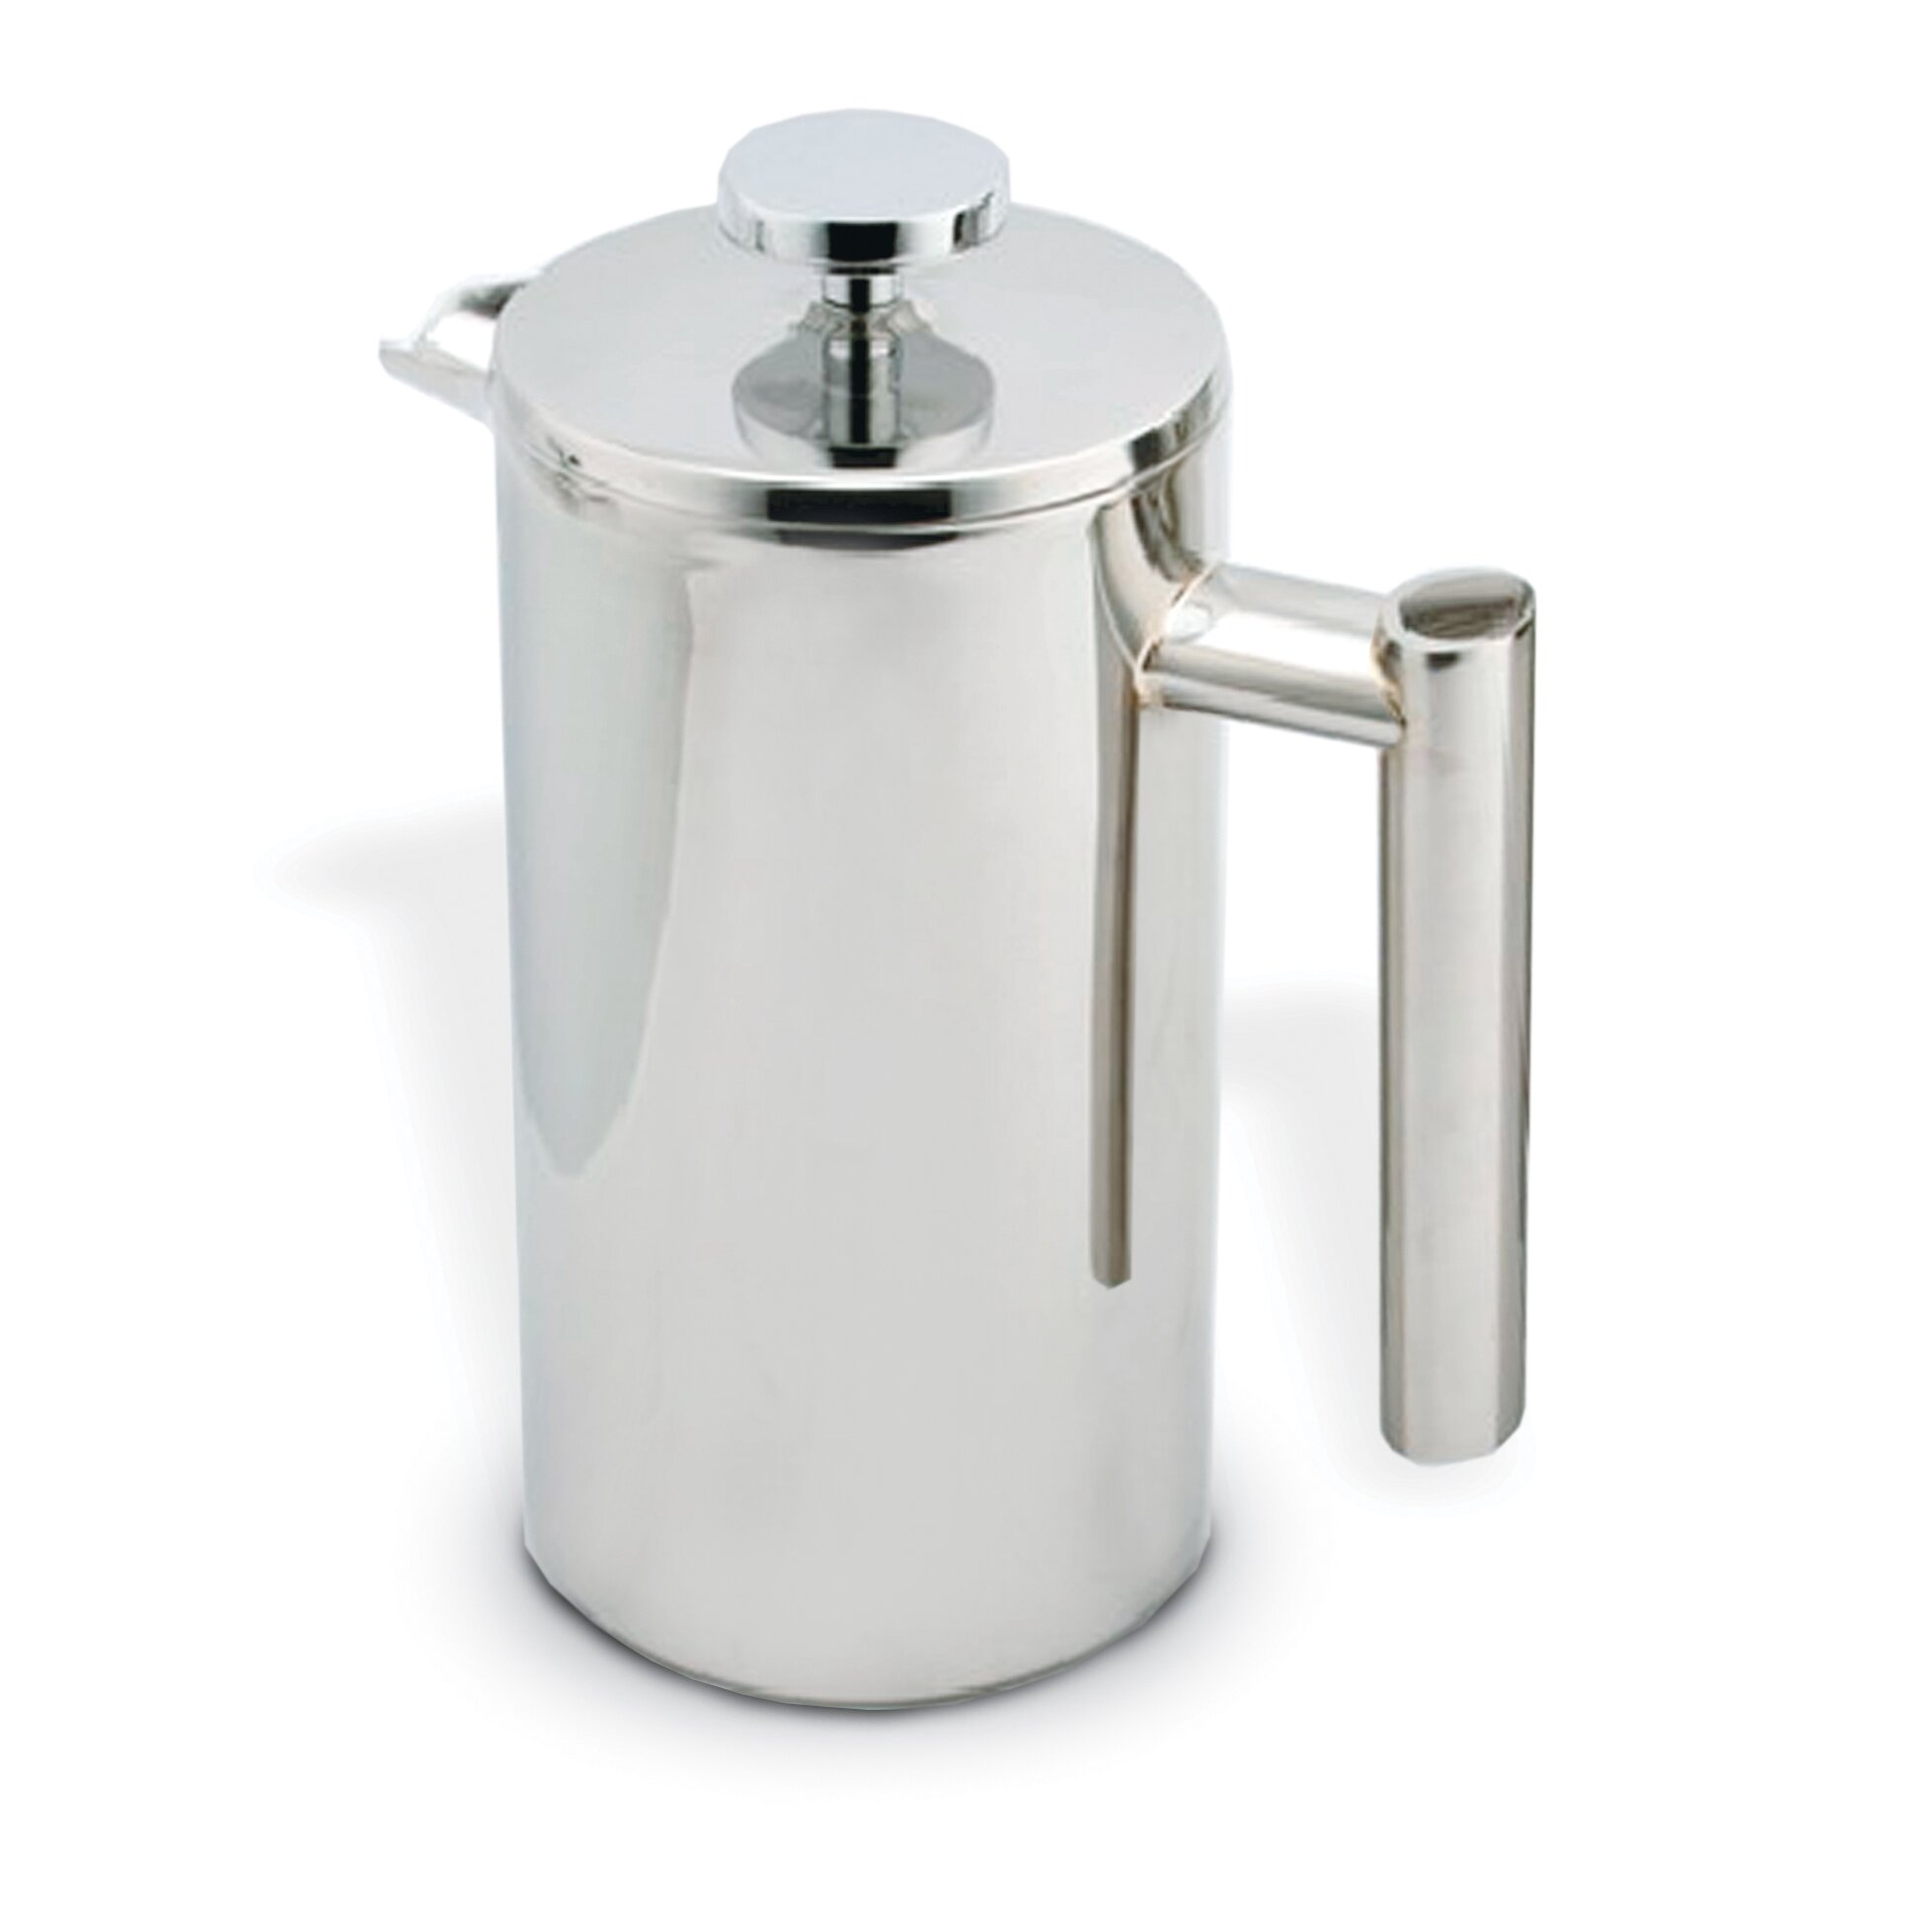 cuisinox double wall french press coffee maker reviews wayfair. Black Bedroom Furniture Sets. Home Design Ideas